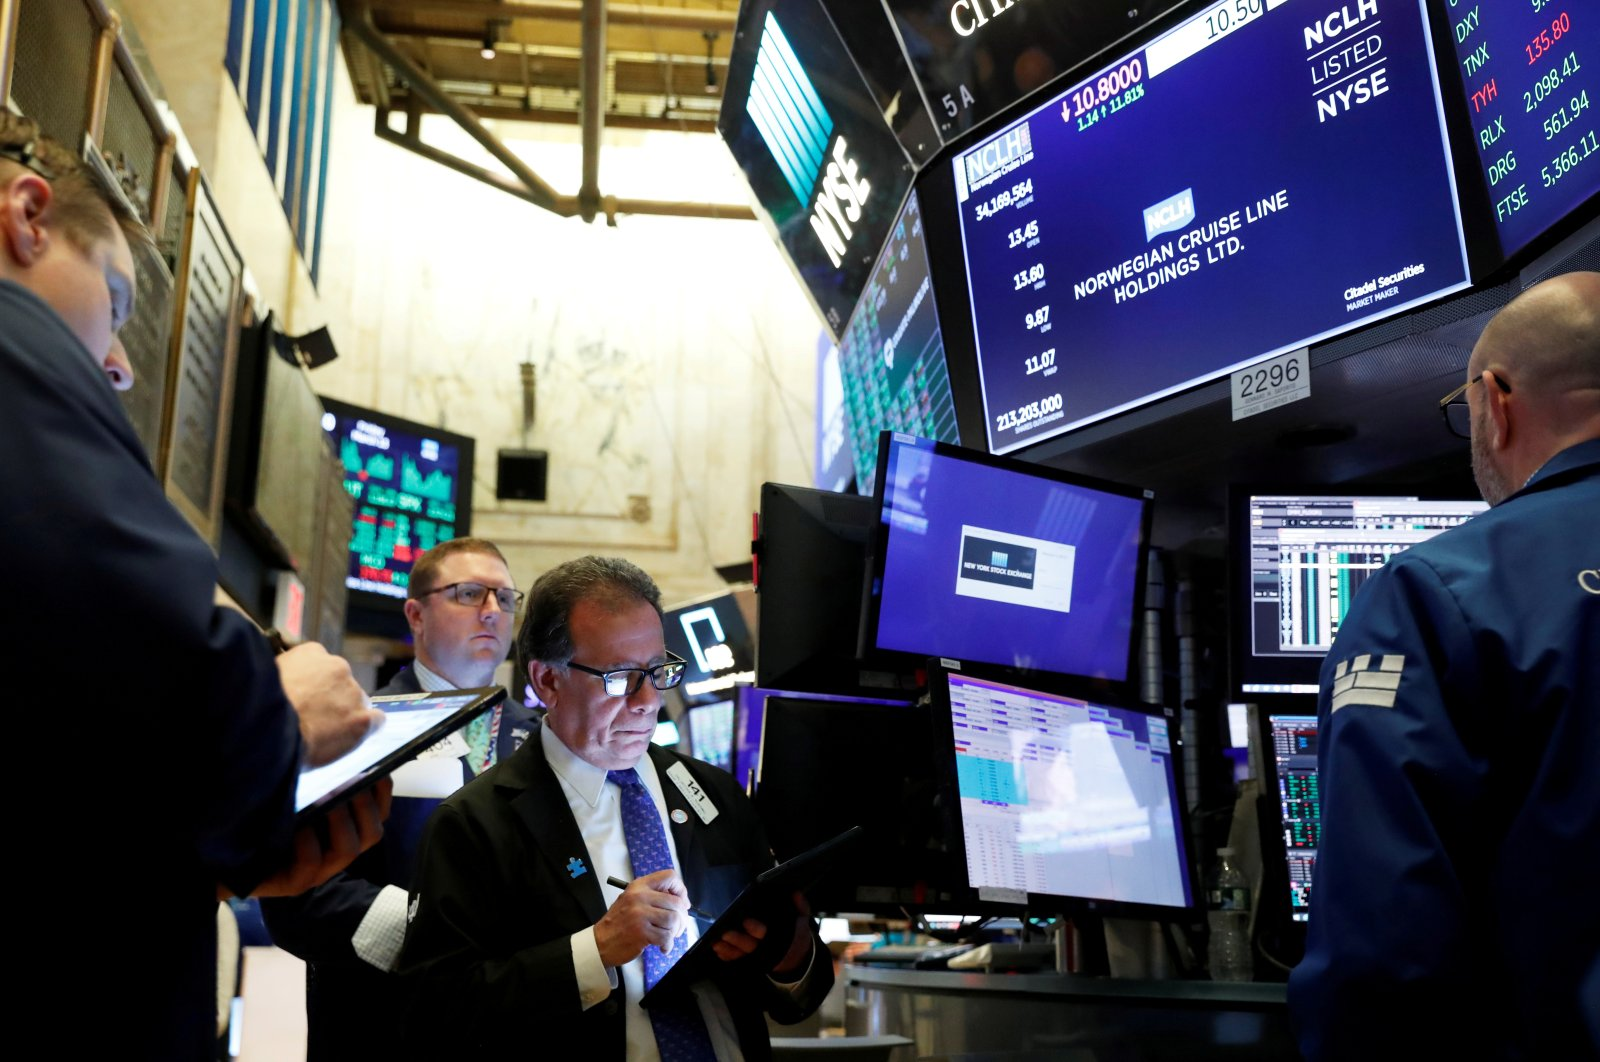 Traders wait for stocks to resume trading on Norwegian Cruise Lines Holding Ltd. on the floor of the New York Stock Exchange in New York City, U.S., March 13, 2020. (Reuters Photo)